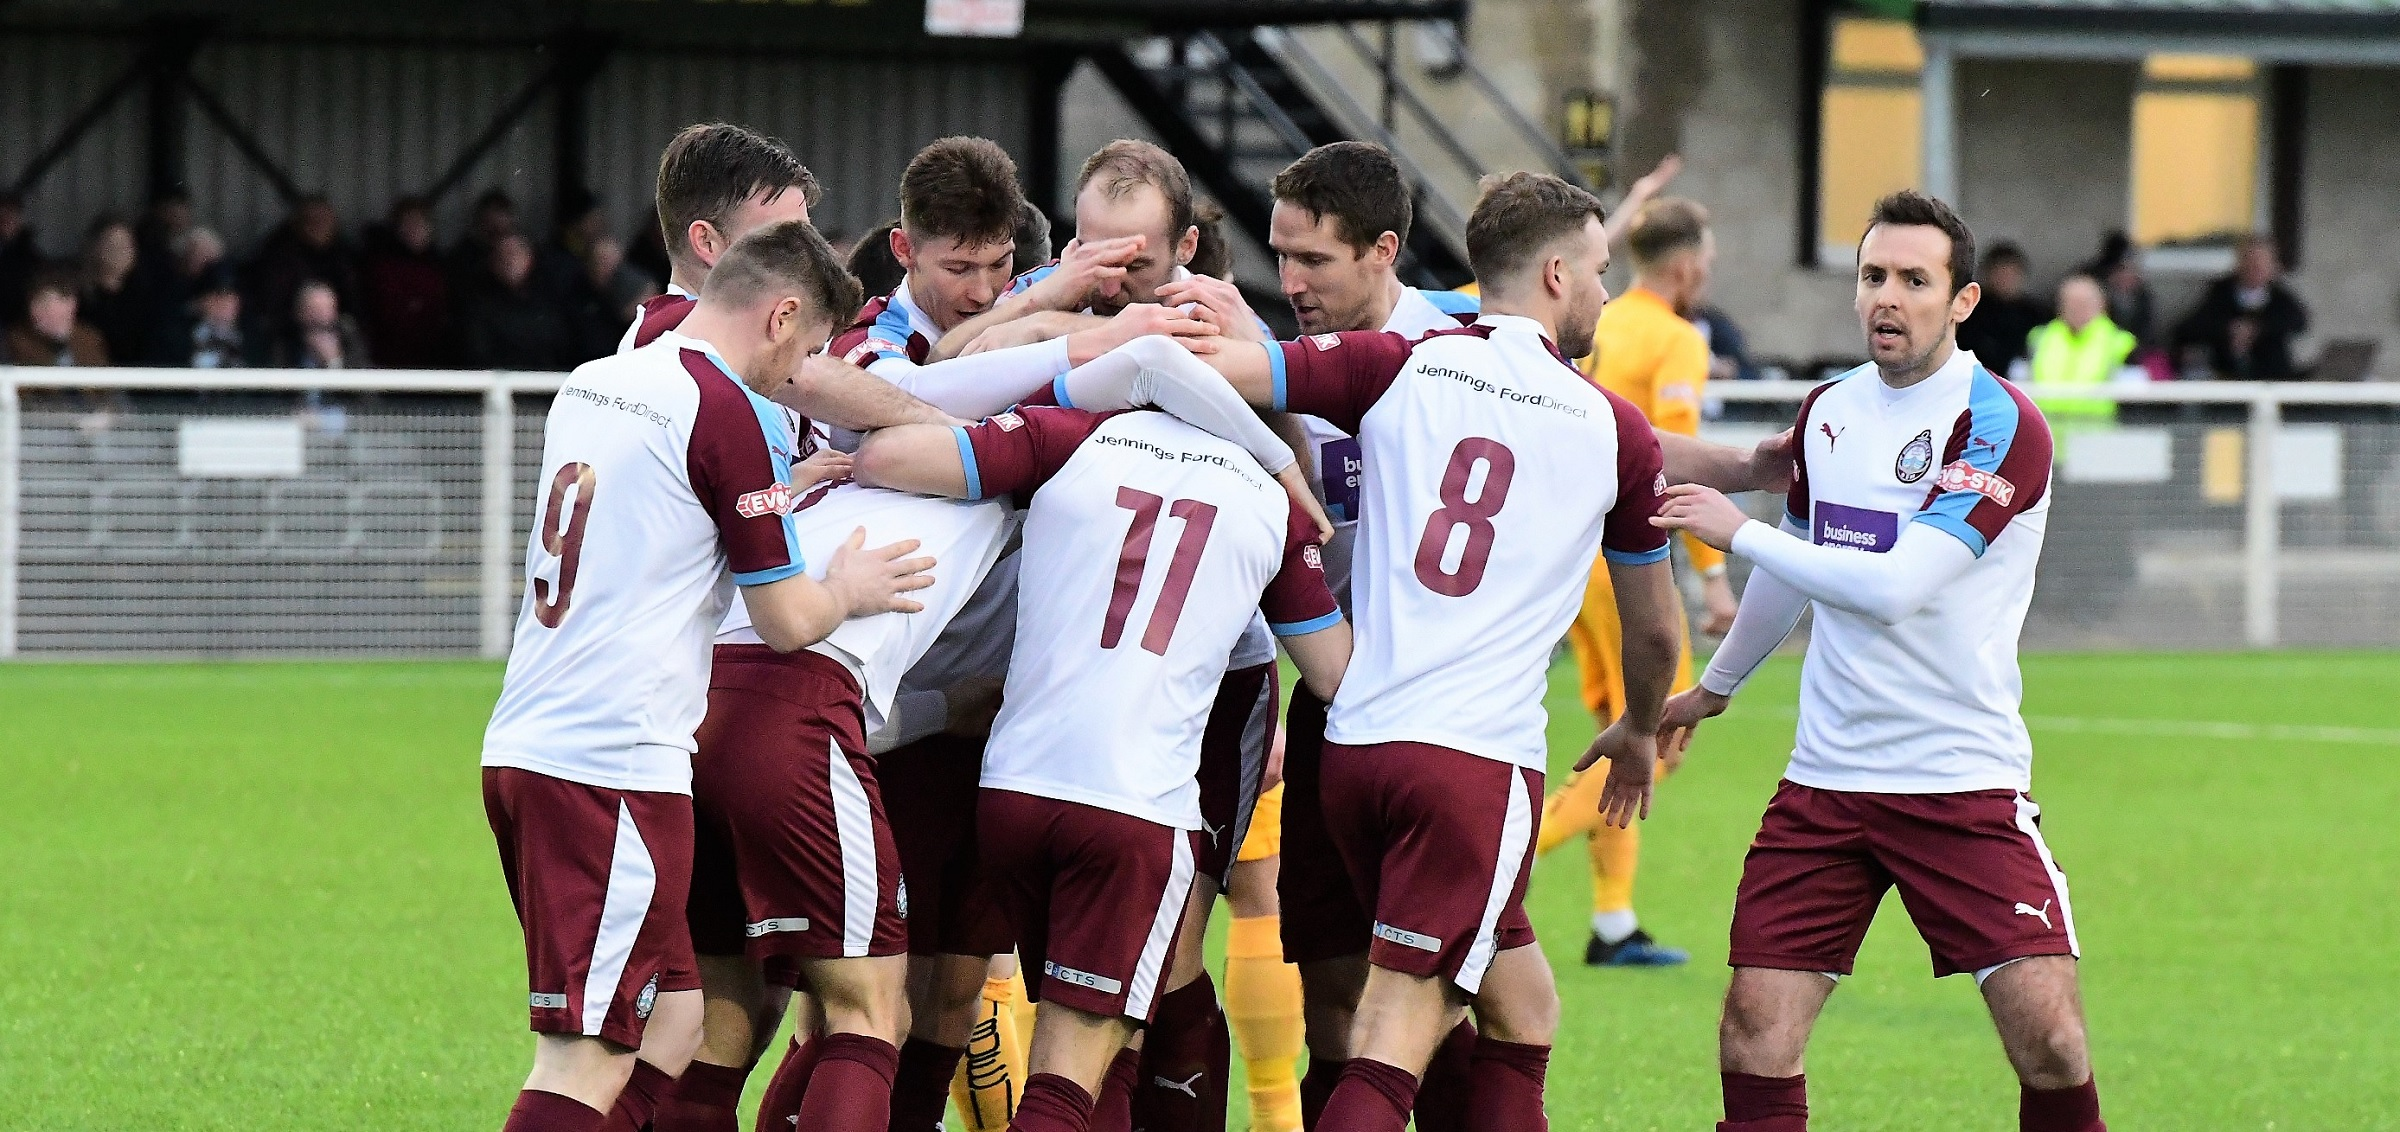 Match Preview: South Shields vs Stafford Rangers, Evo-Stik Premier Division